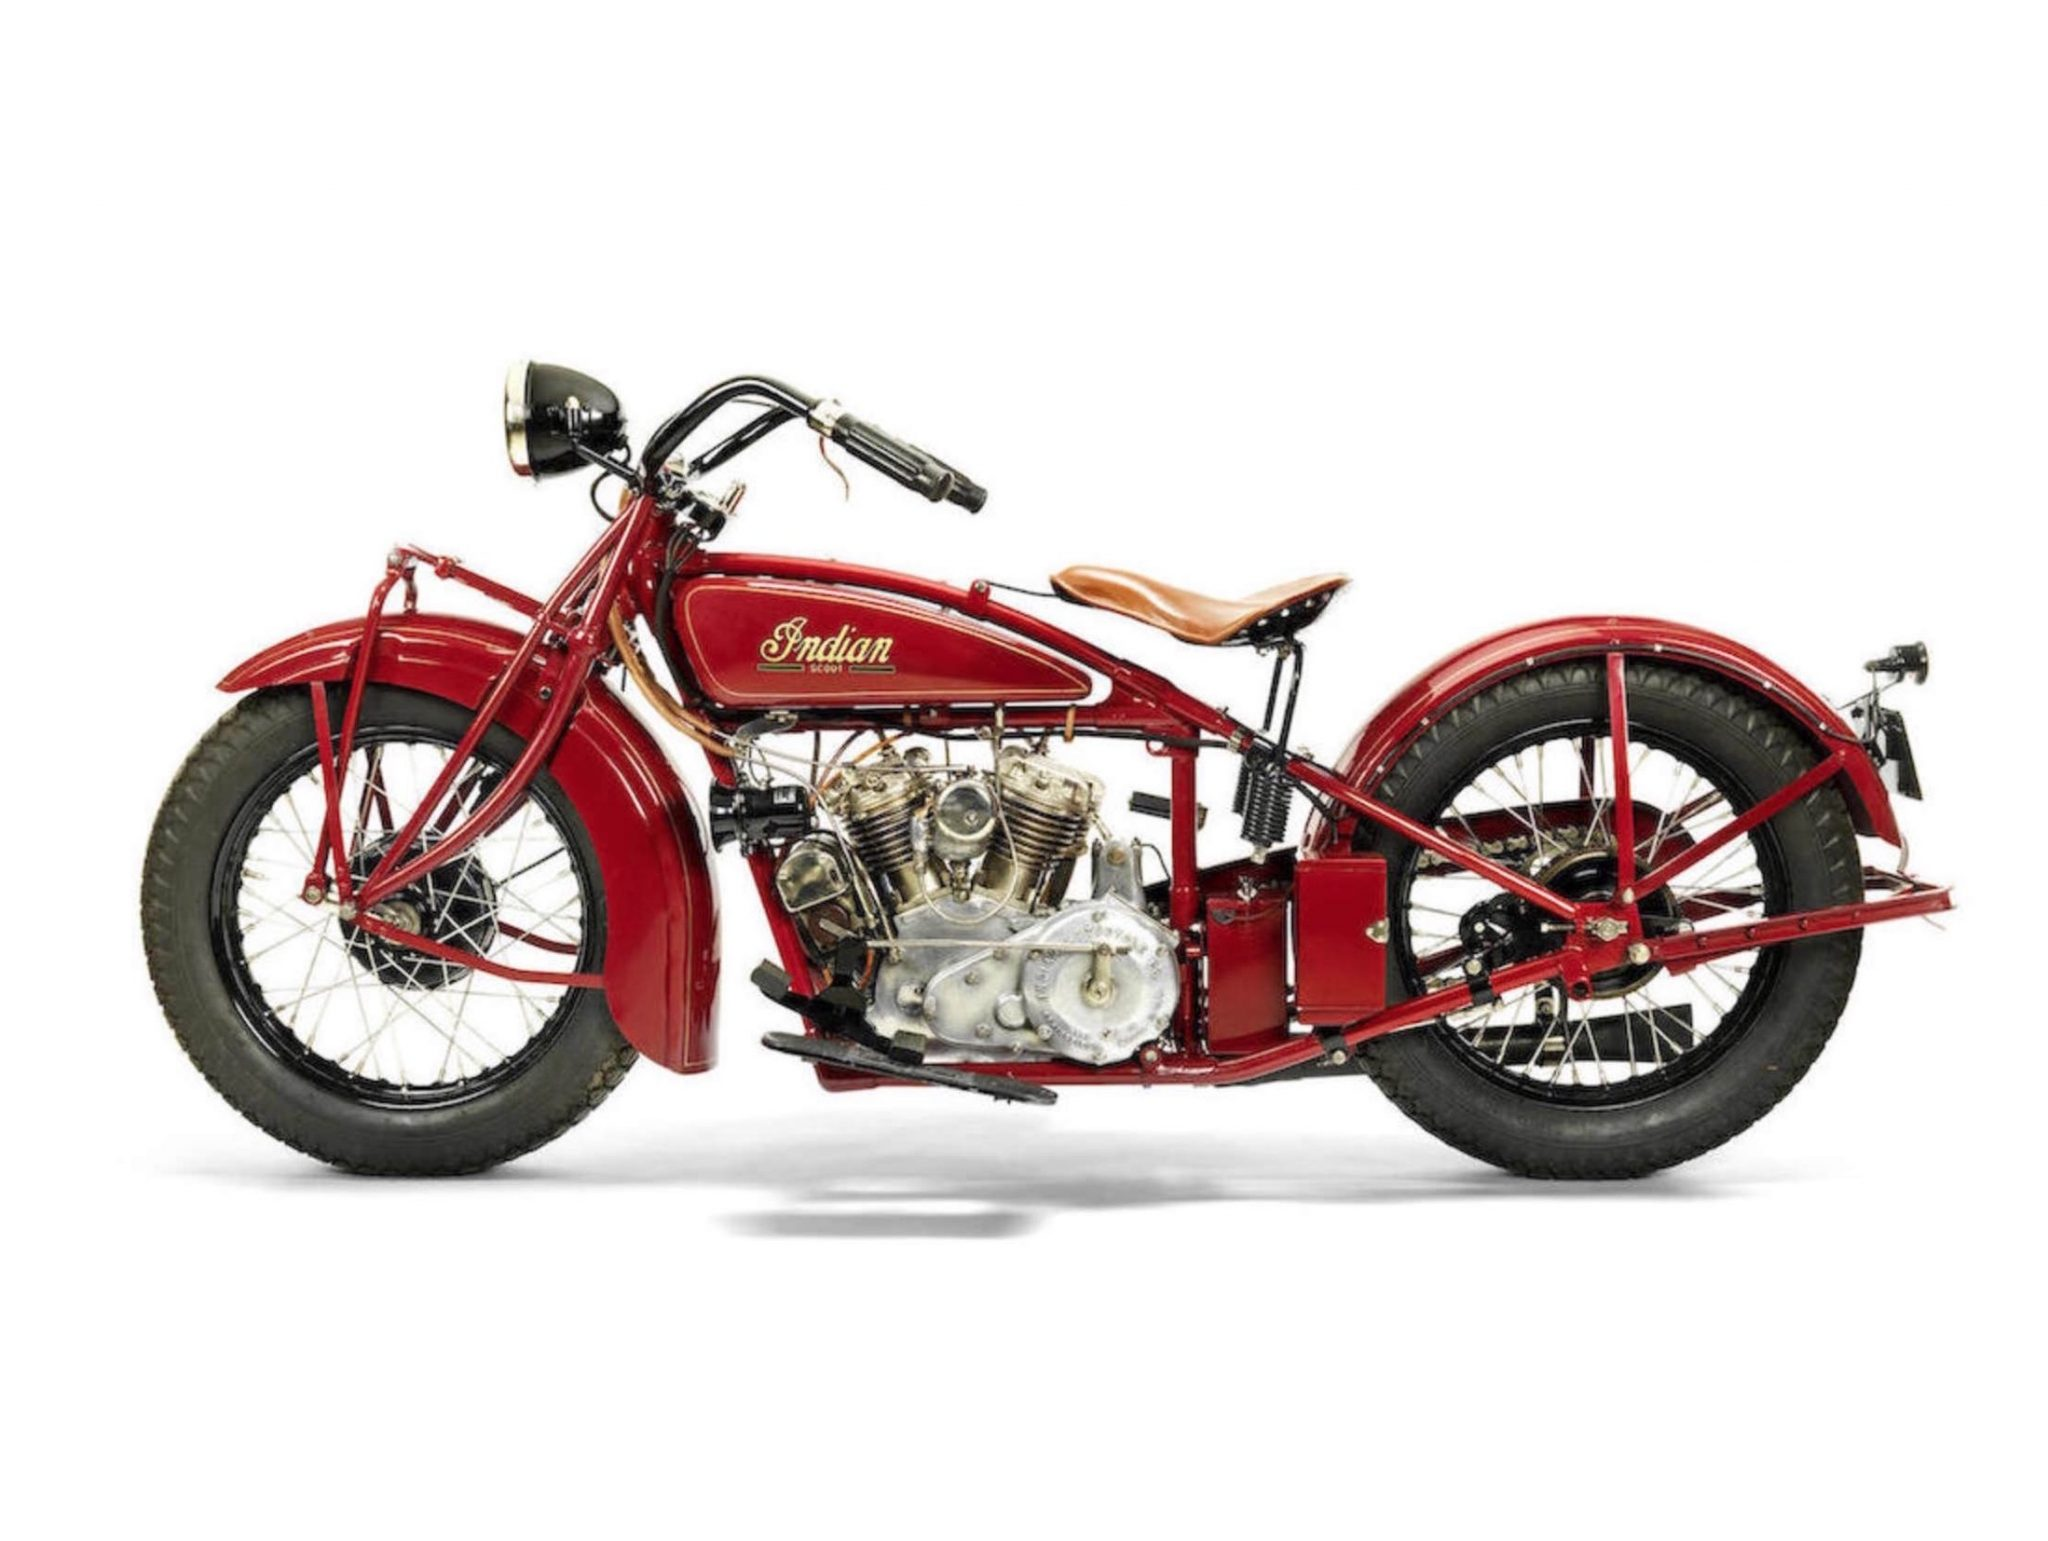 5 Minute Histories: The Indian Scout